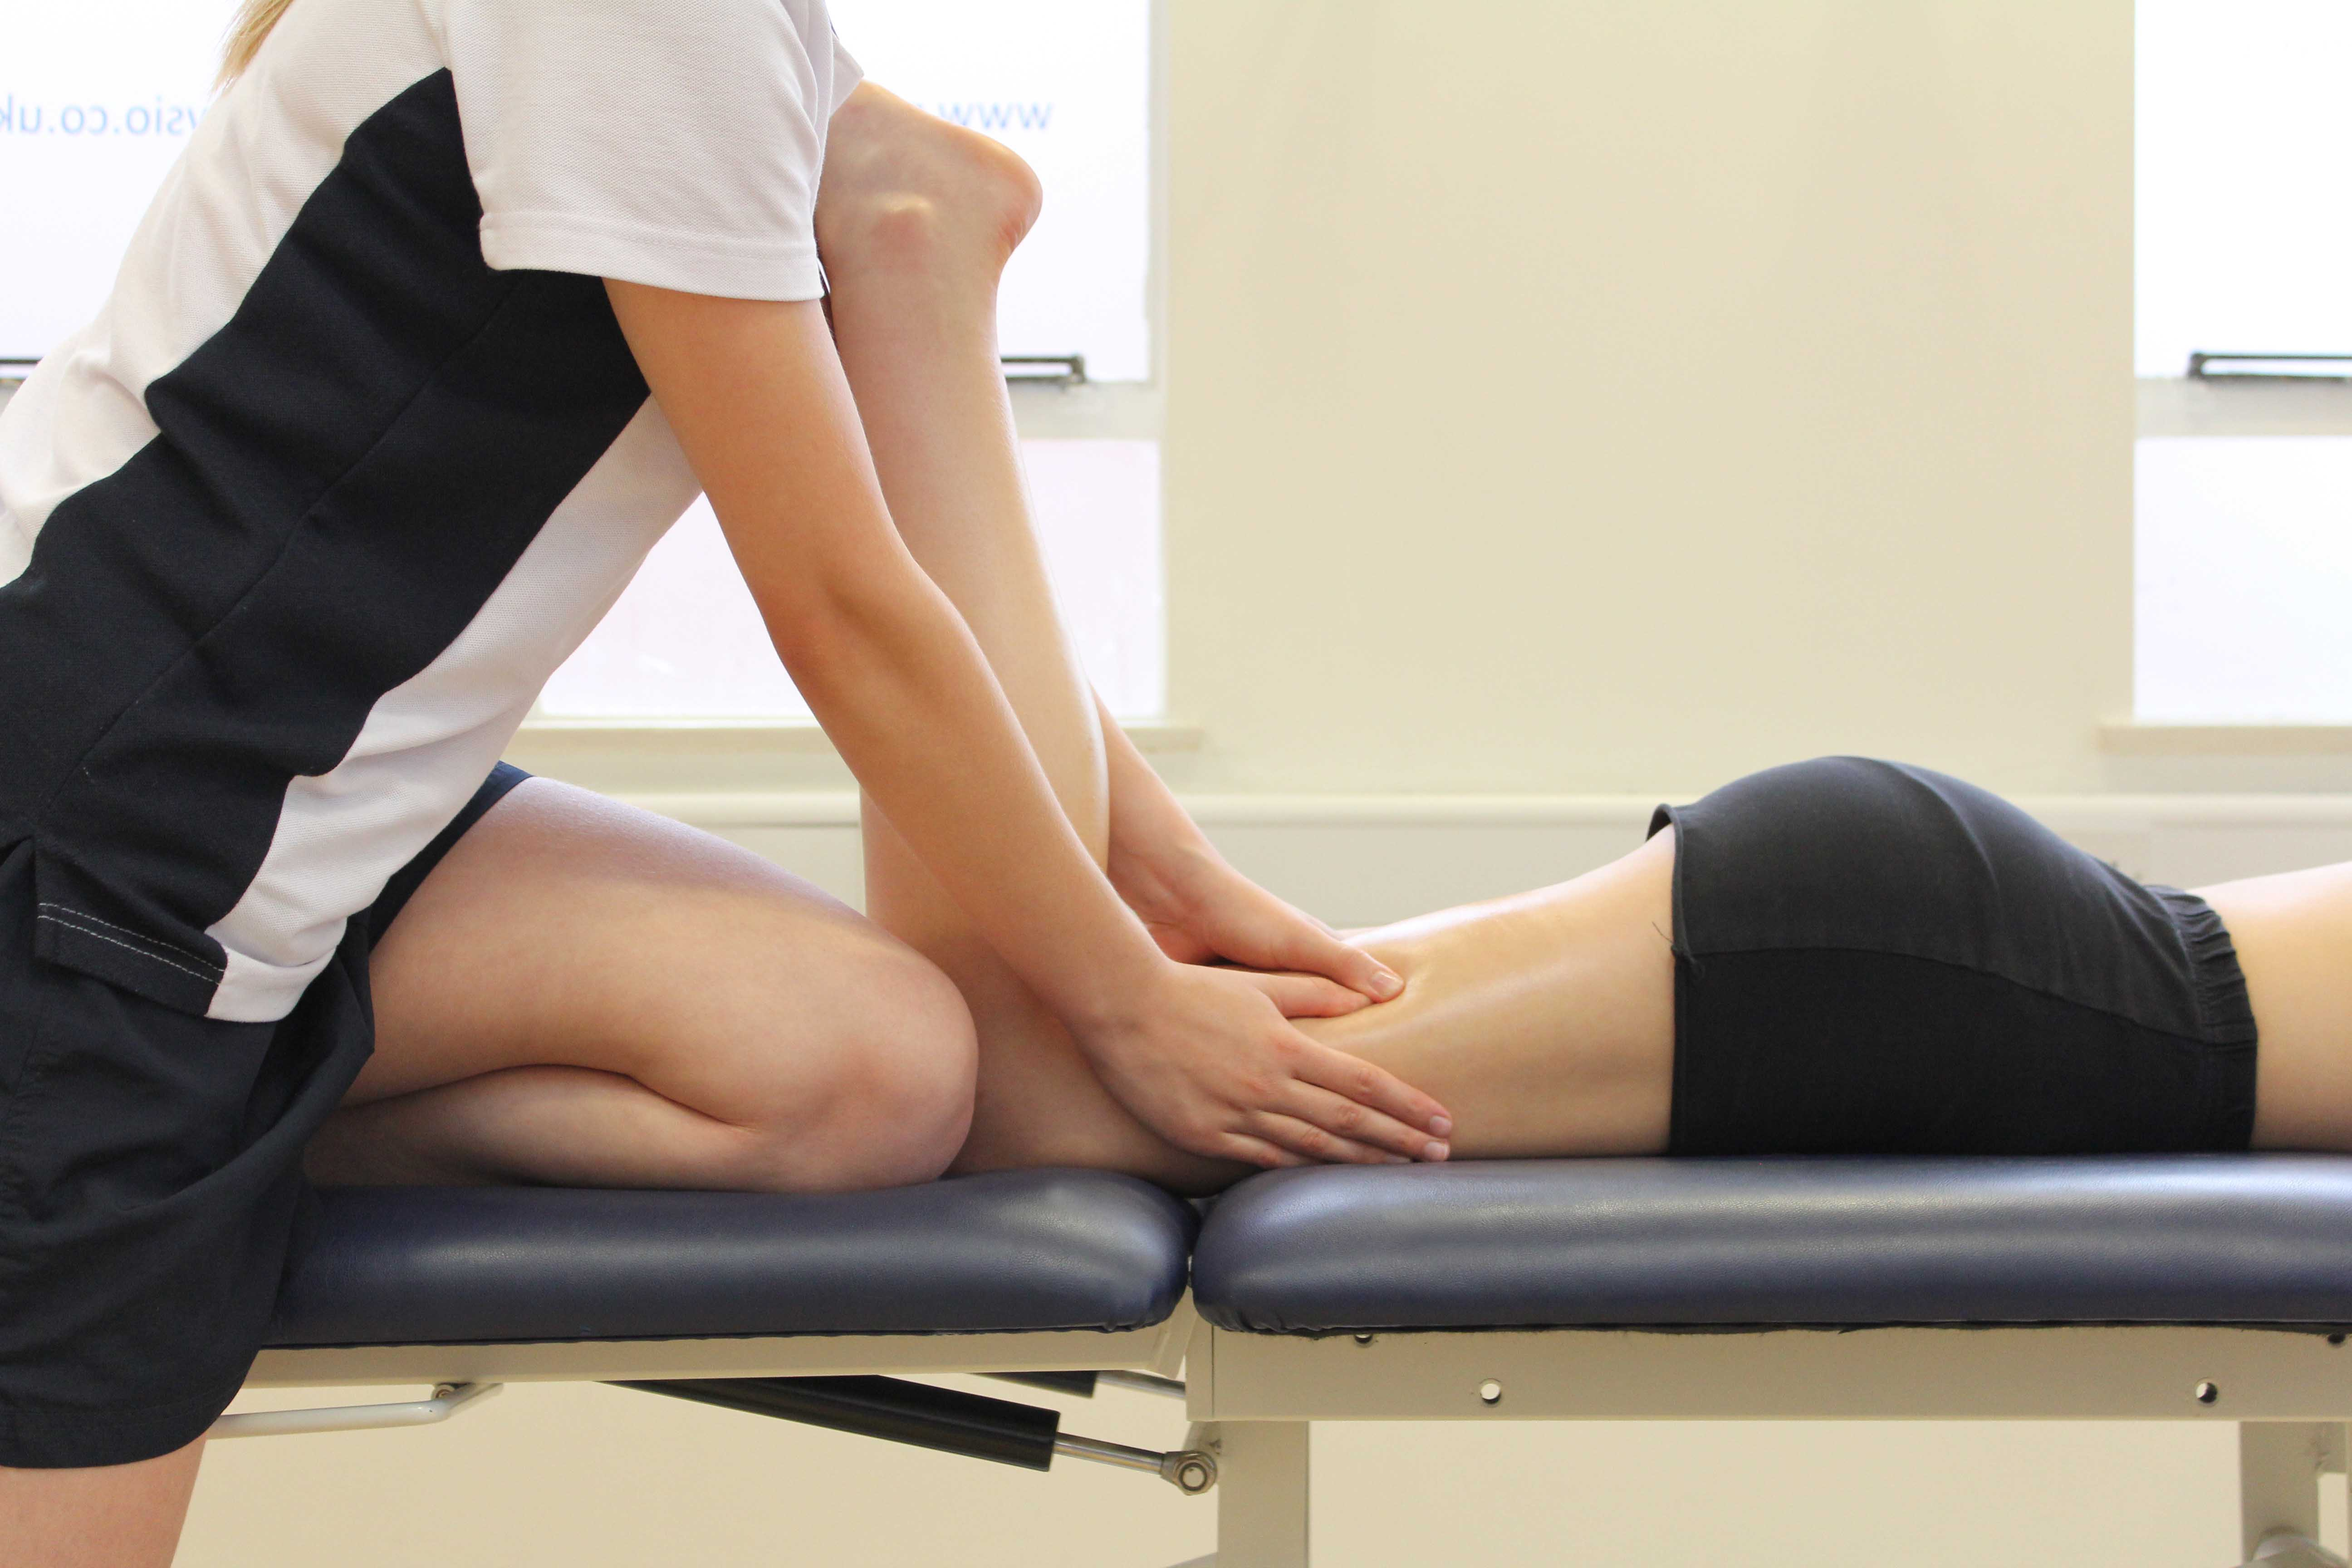 Trigger point massage of the hamstring muscles by an experienced physiotherapist